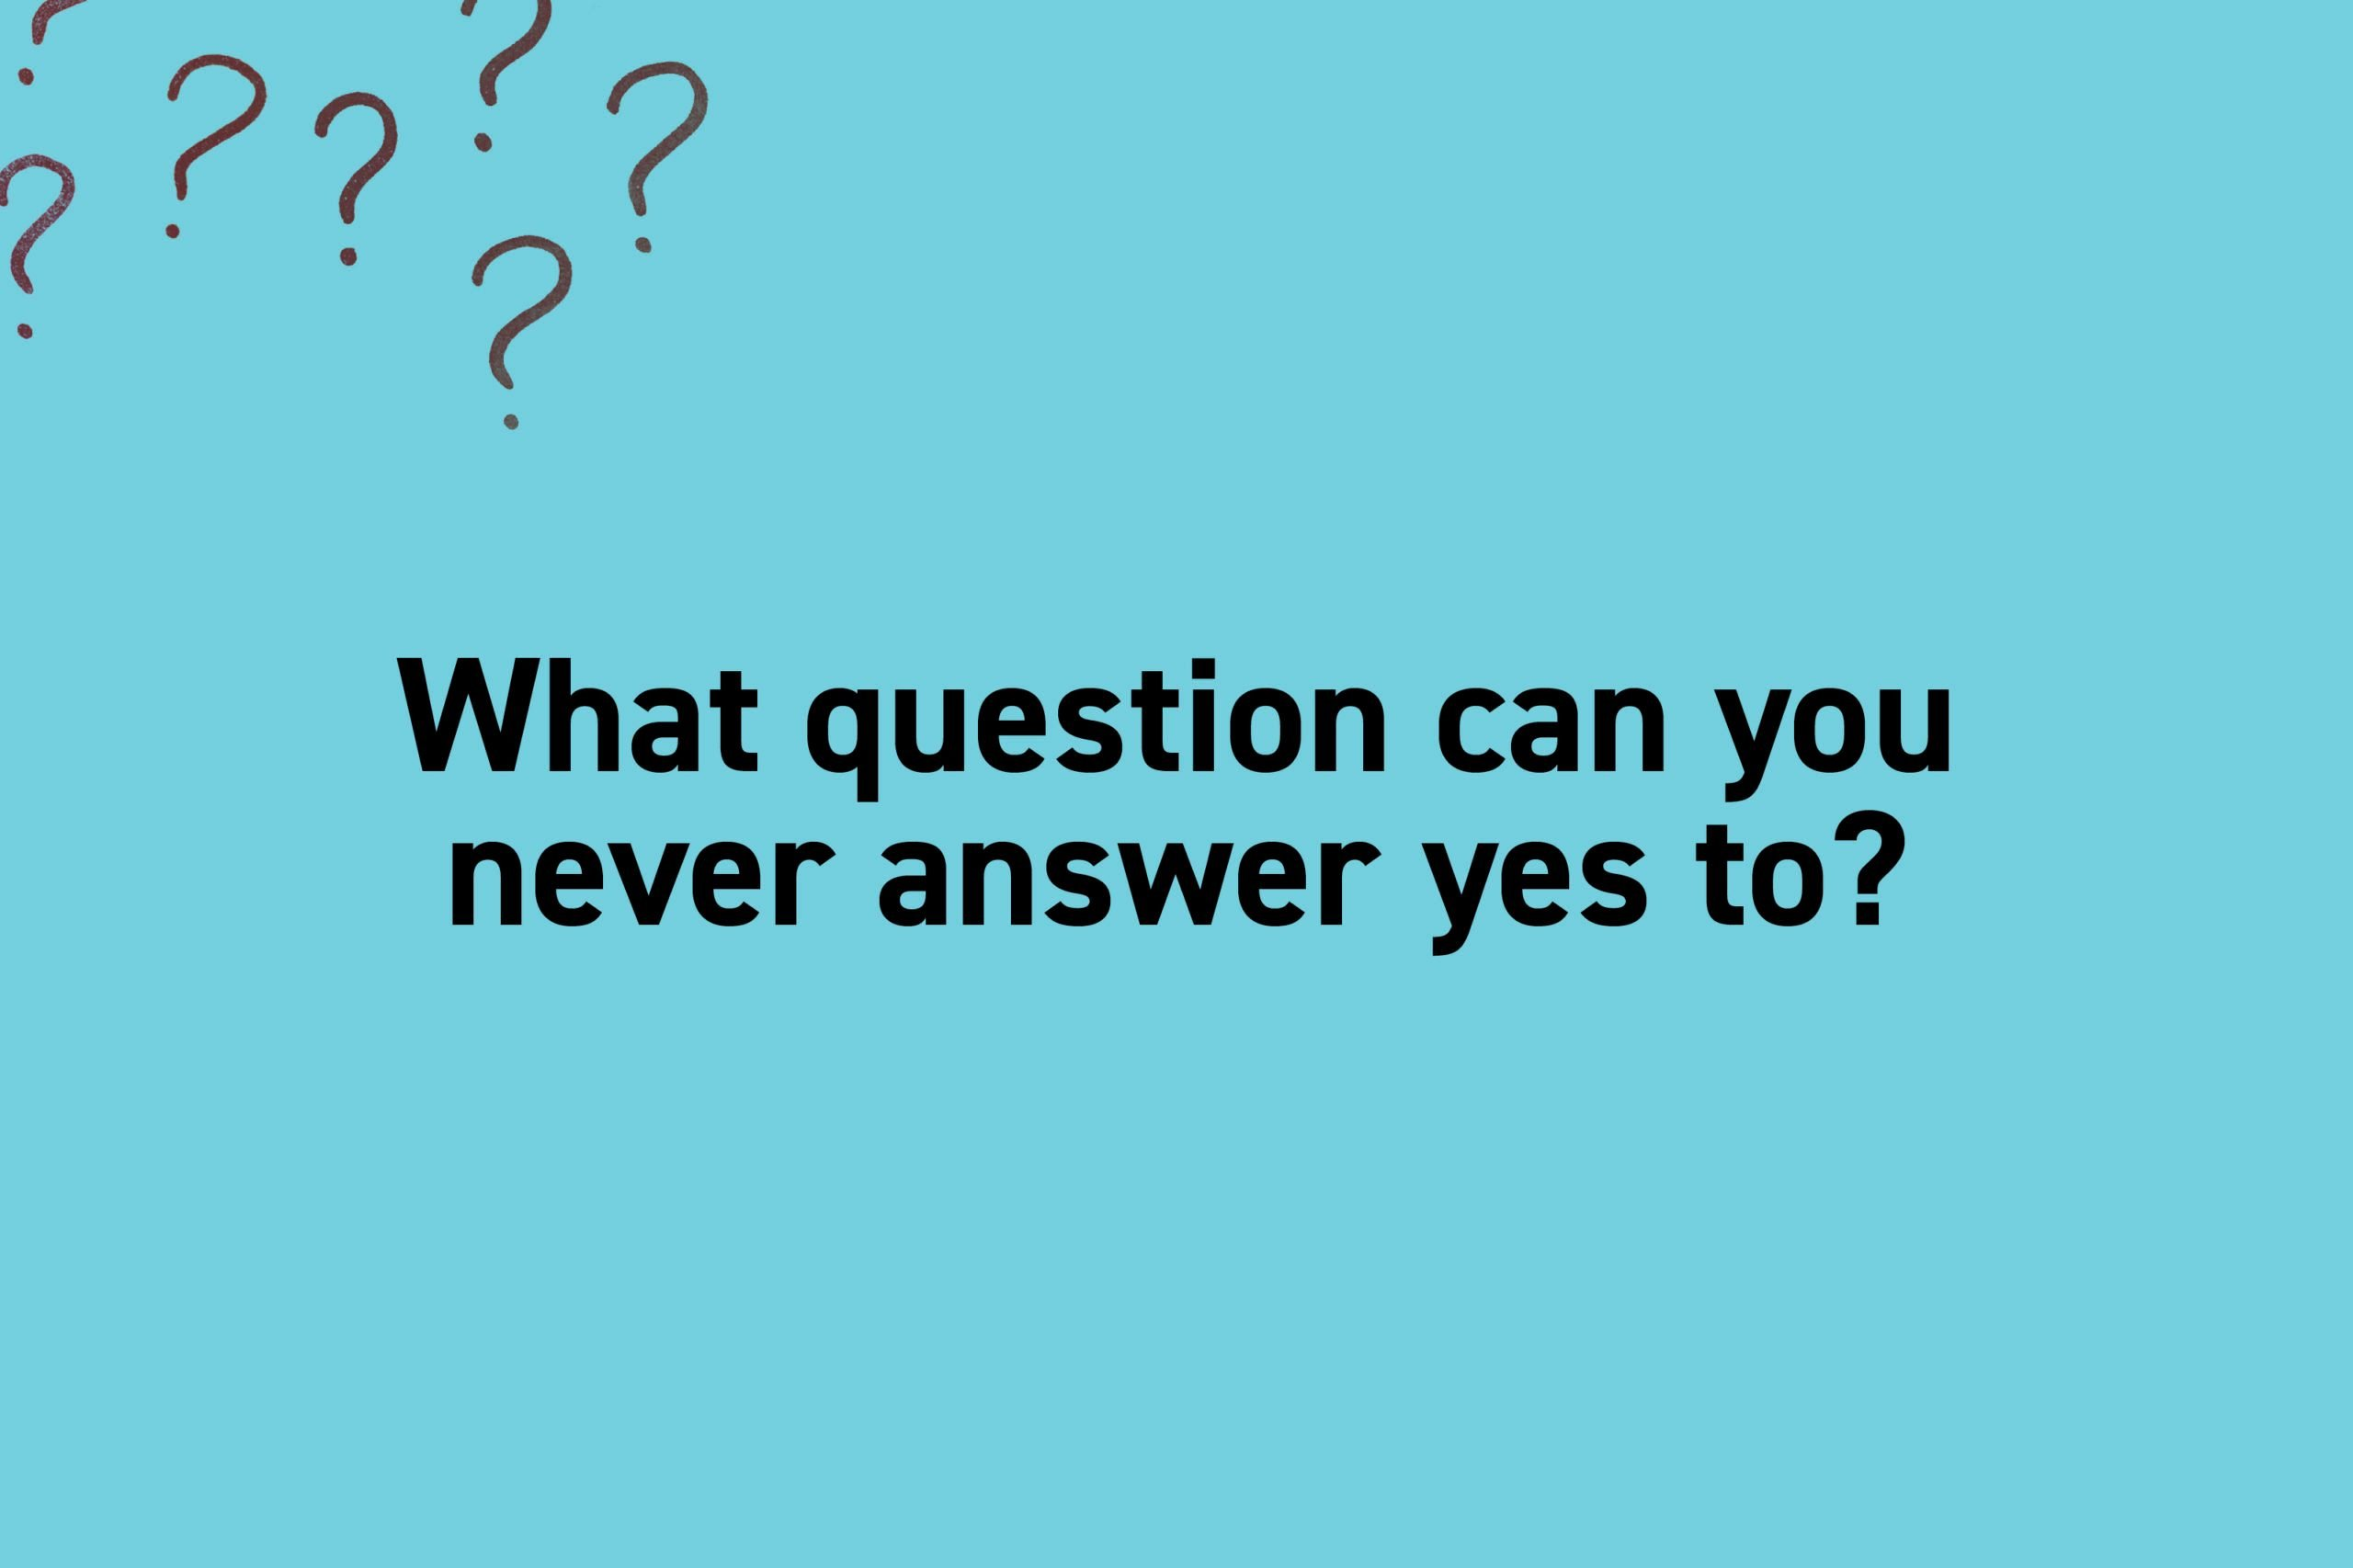 What question can you never answer yes to?